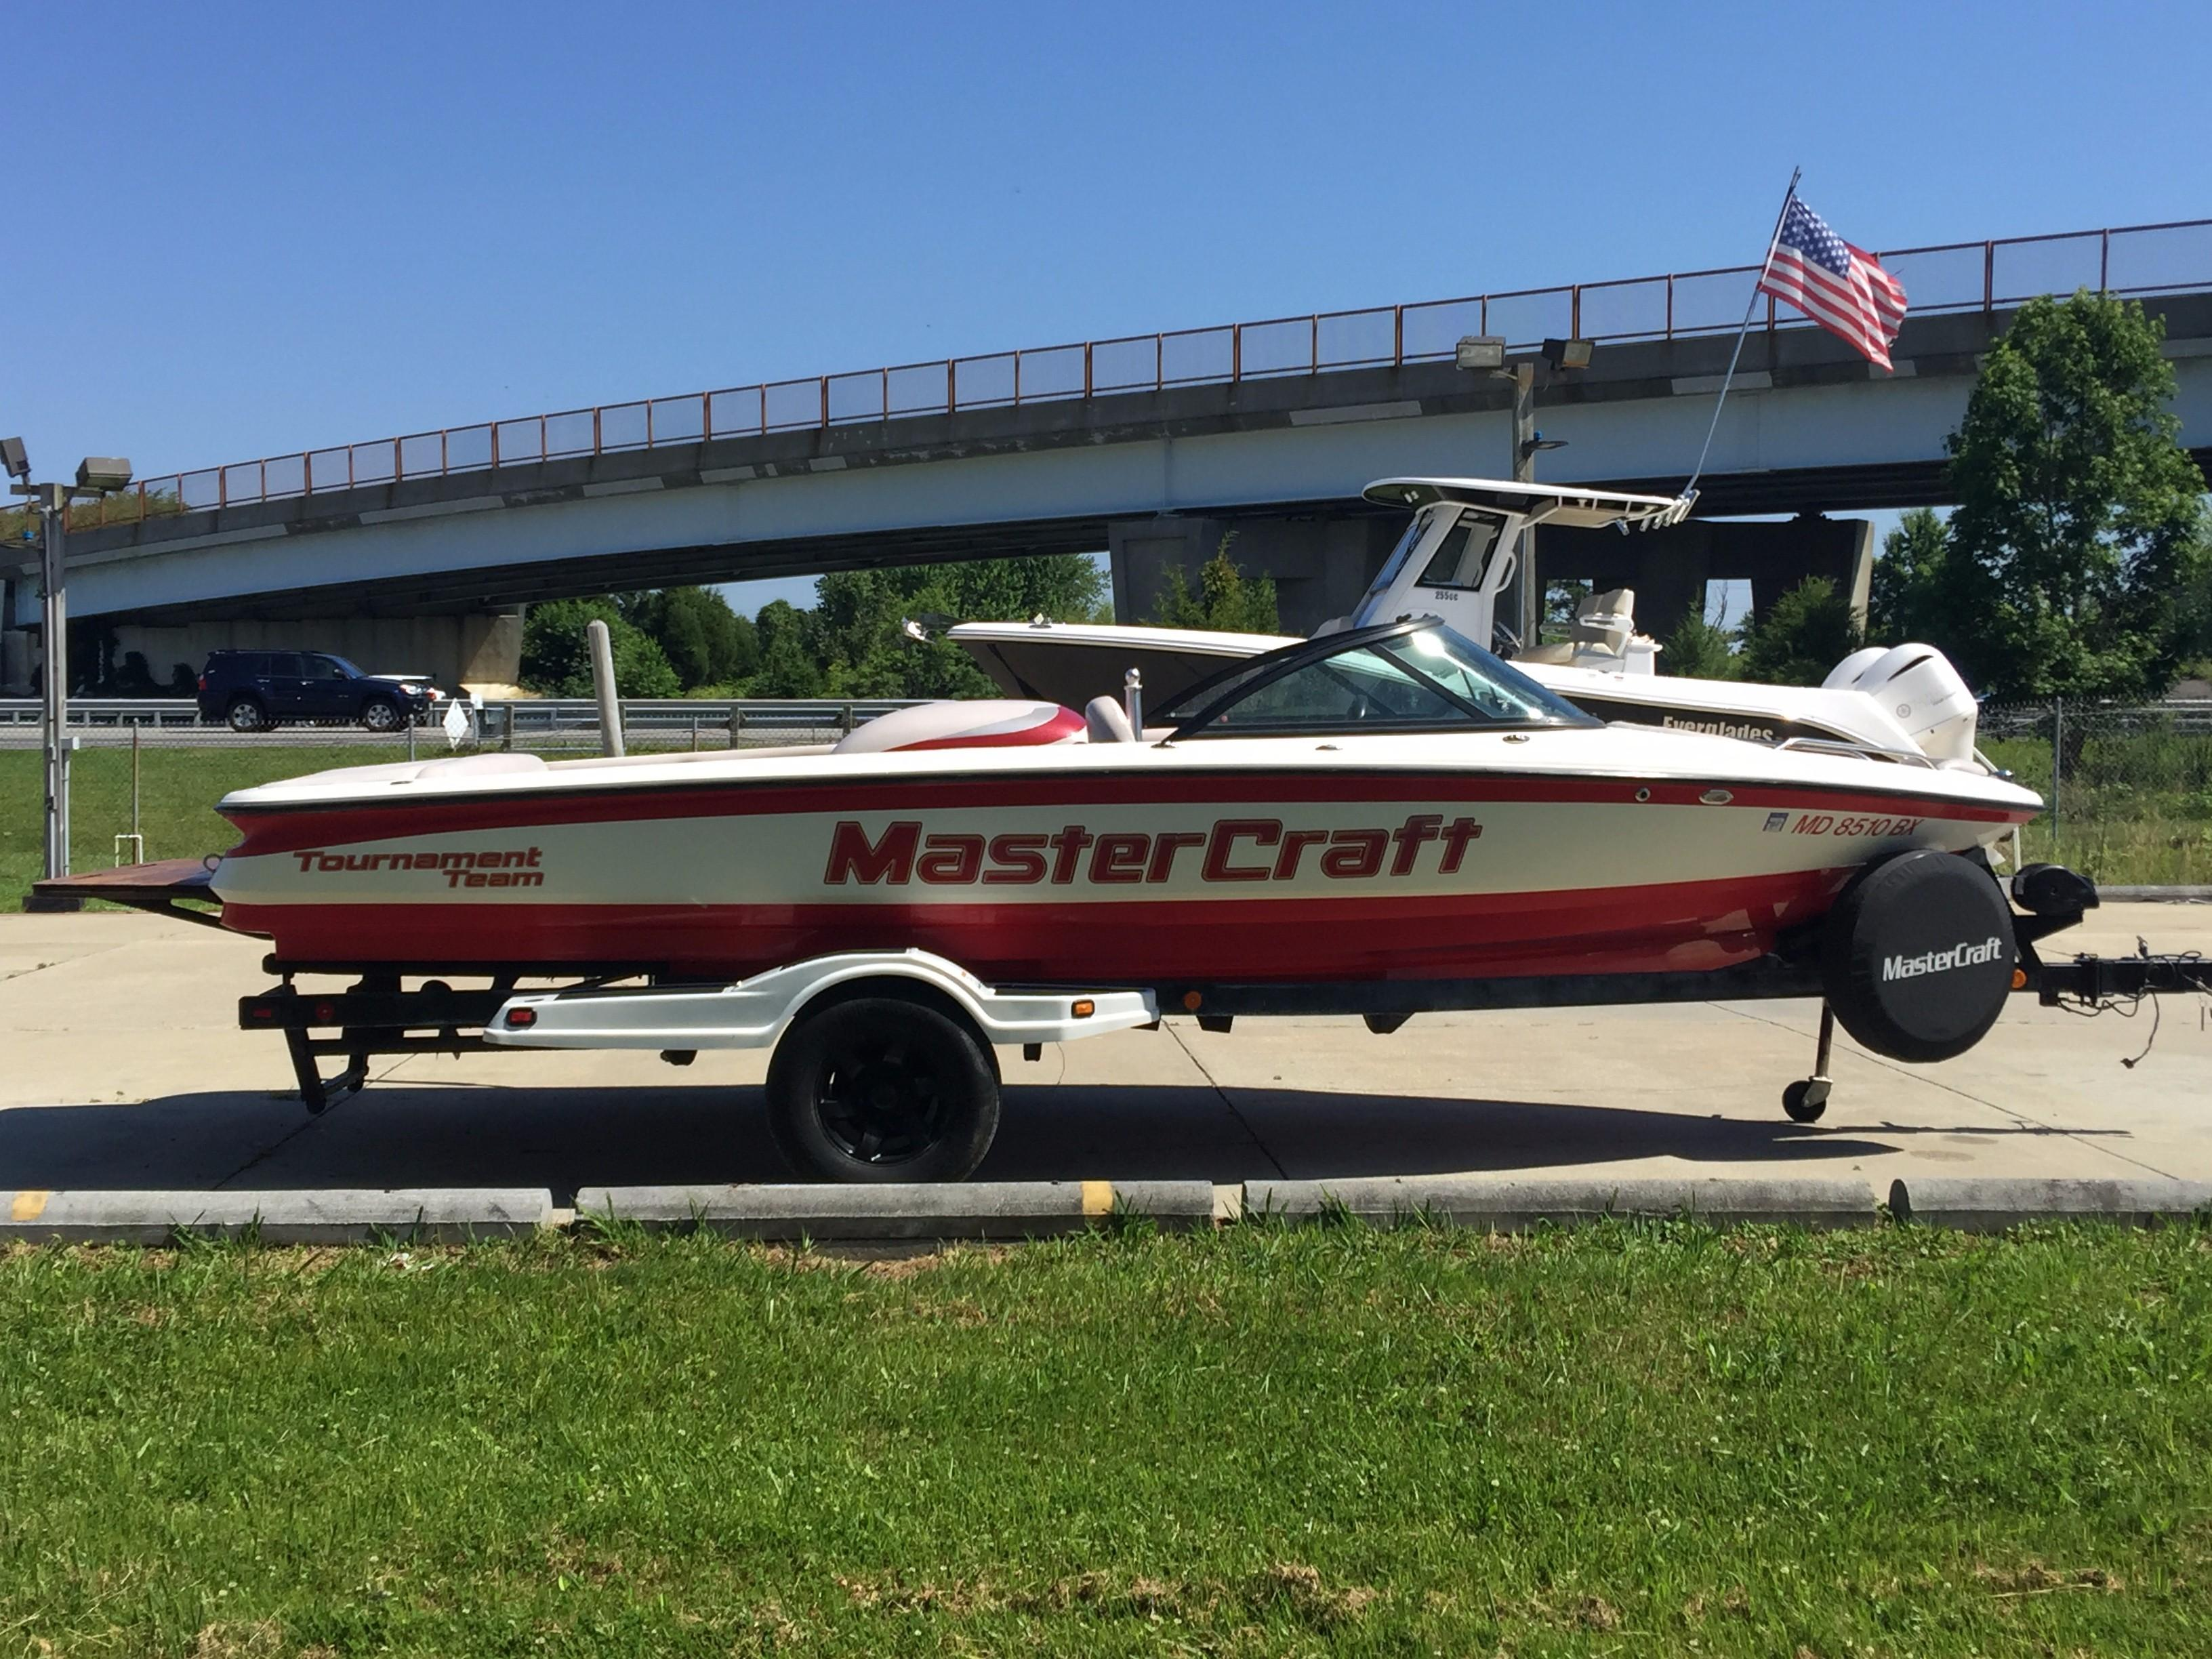 2006 Mastercraft Prostar 197 Power Boat For Sale